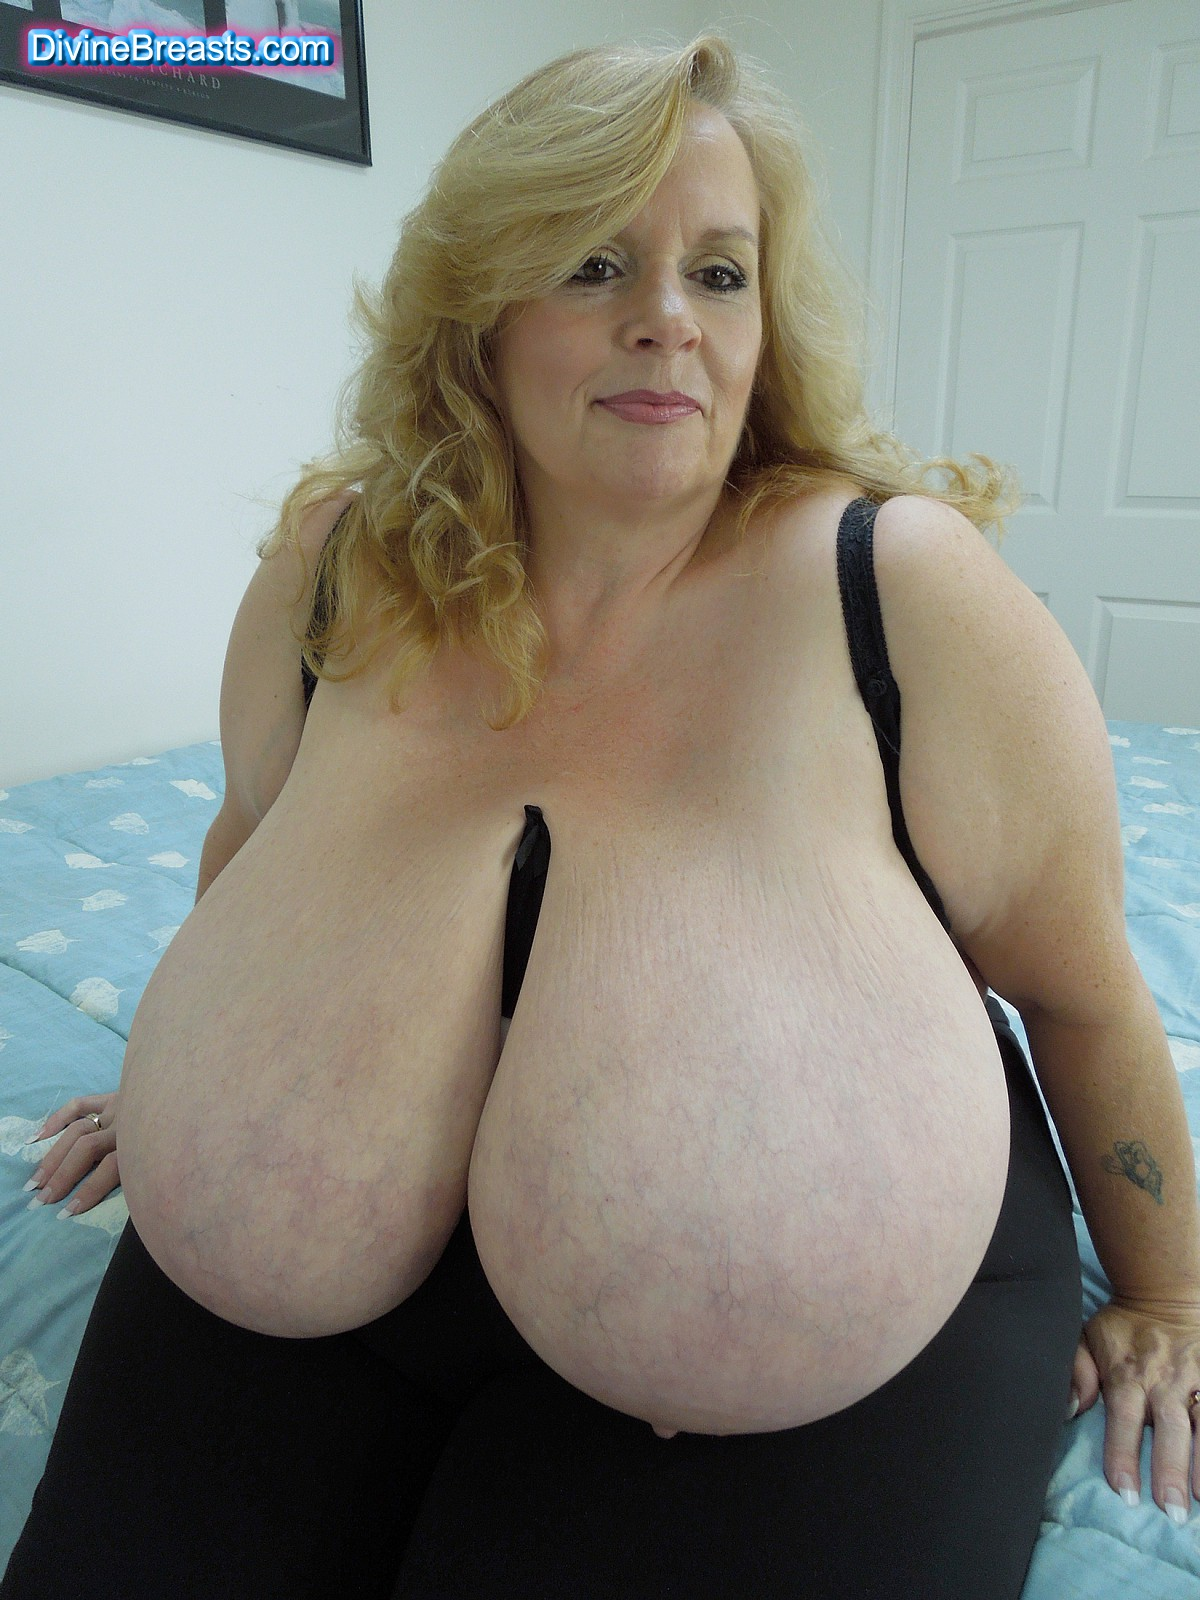 Naked old lady big tits, sexy mature pictures, women porn gallery